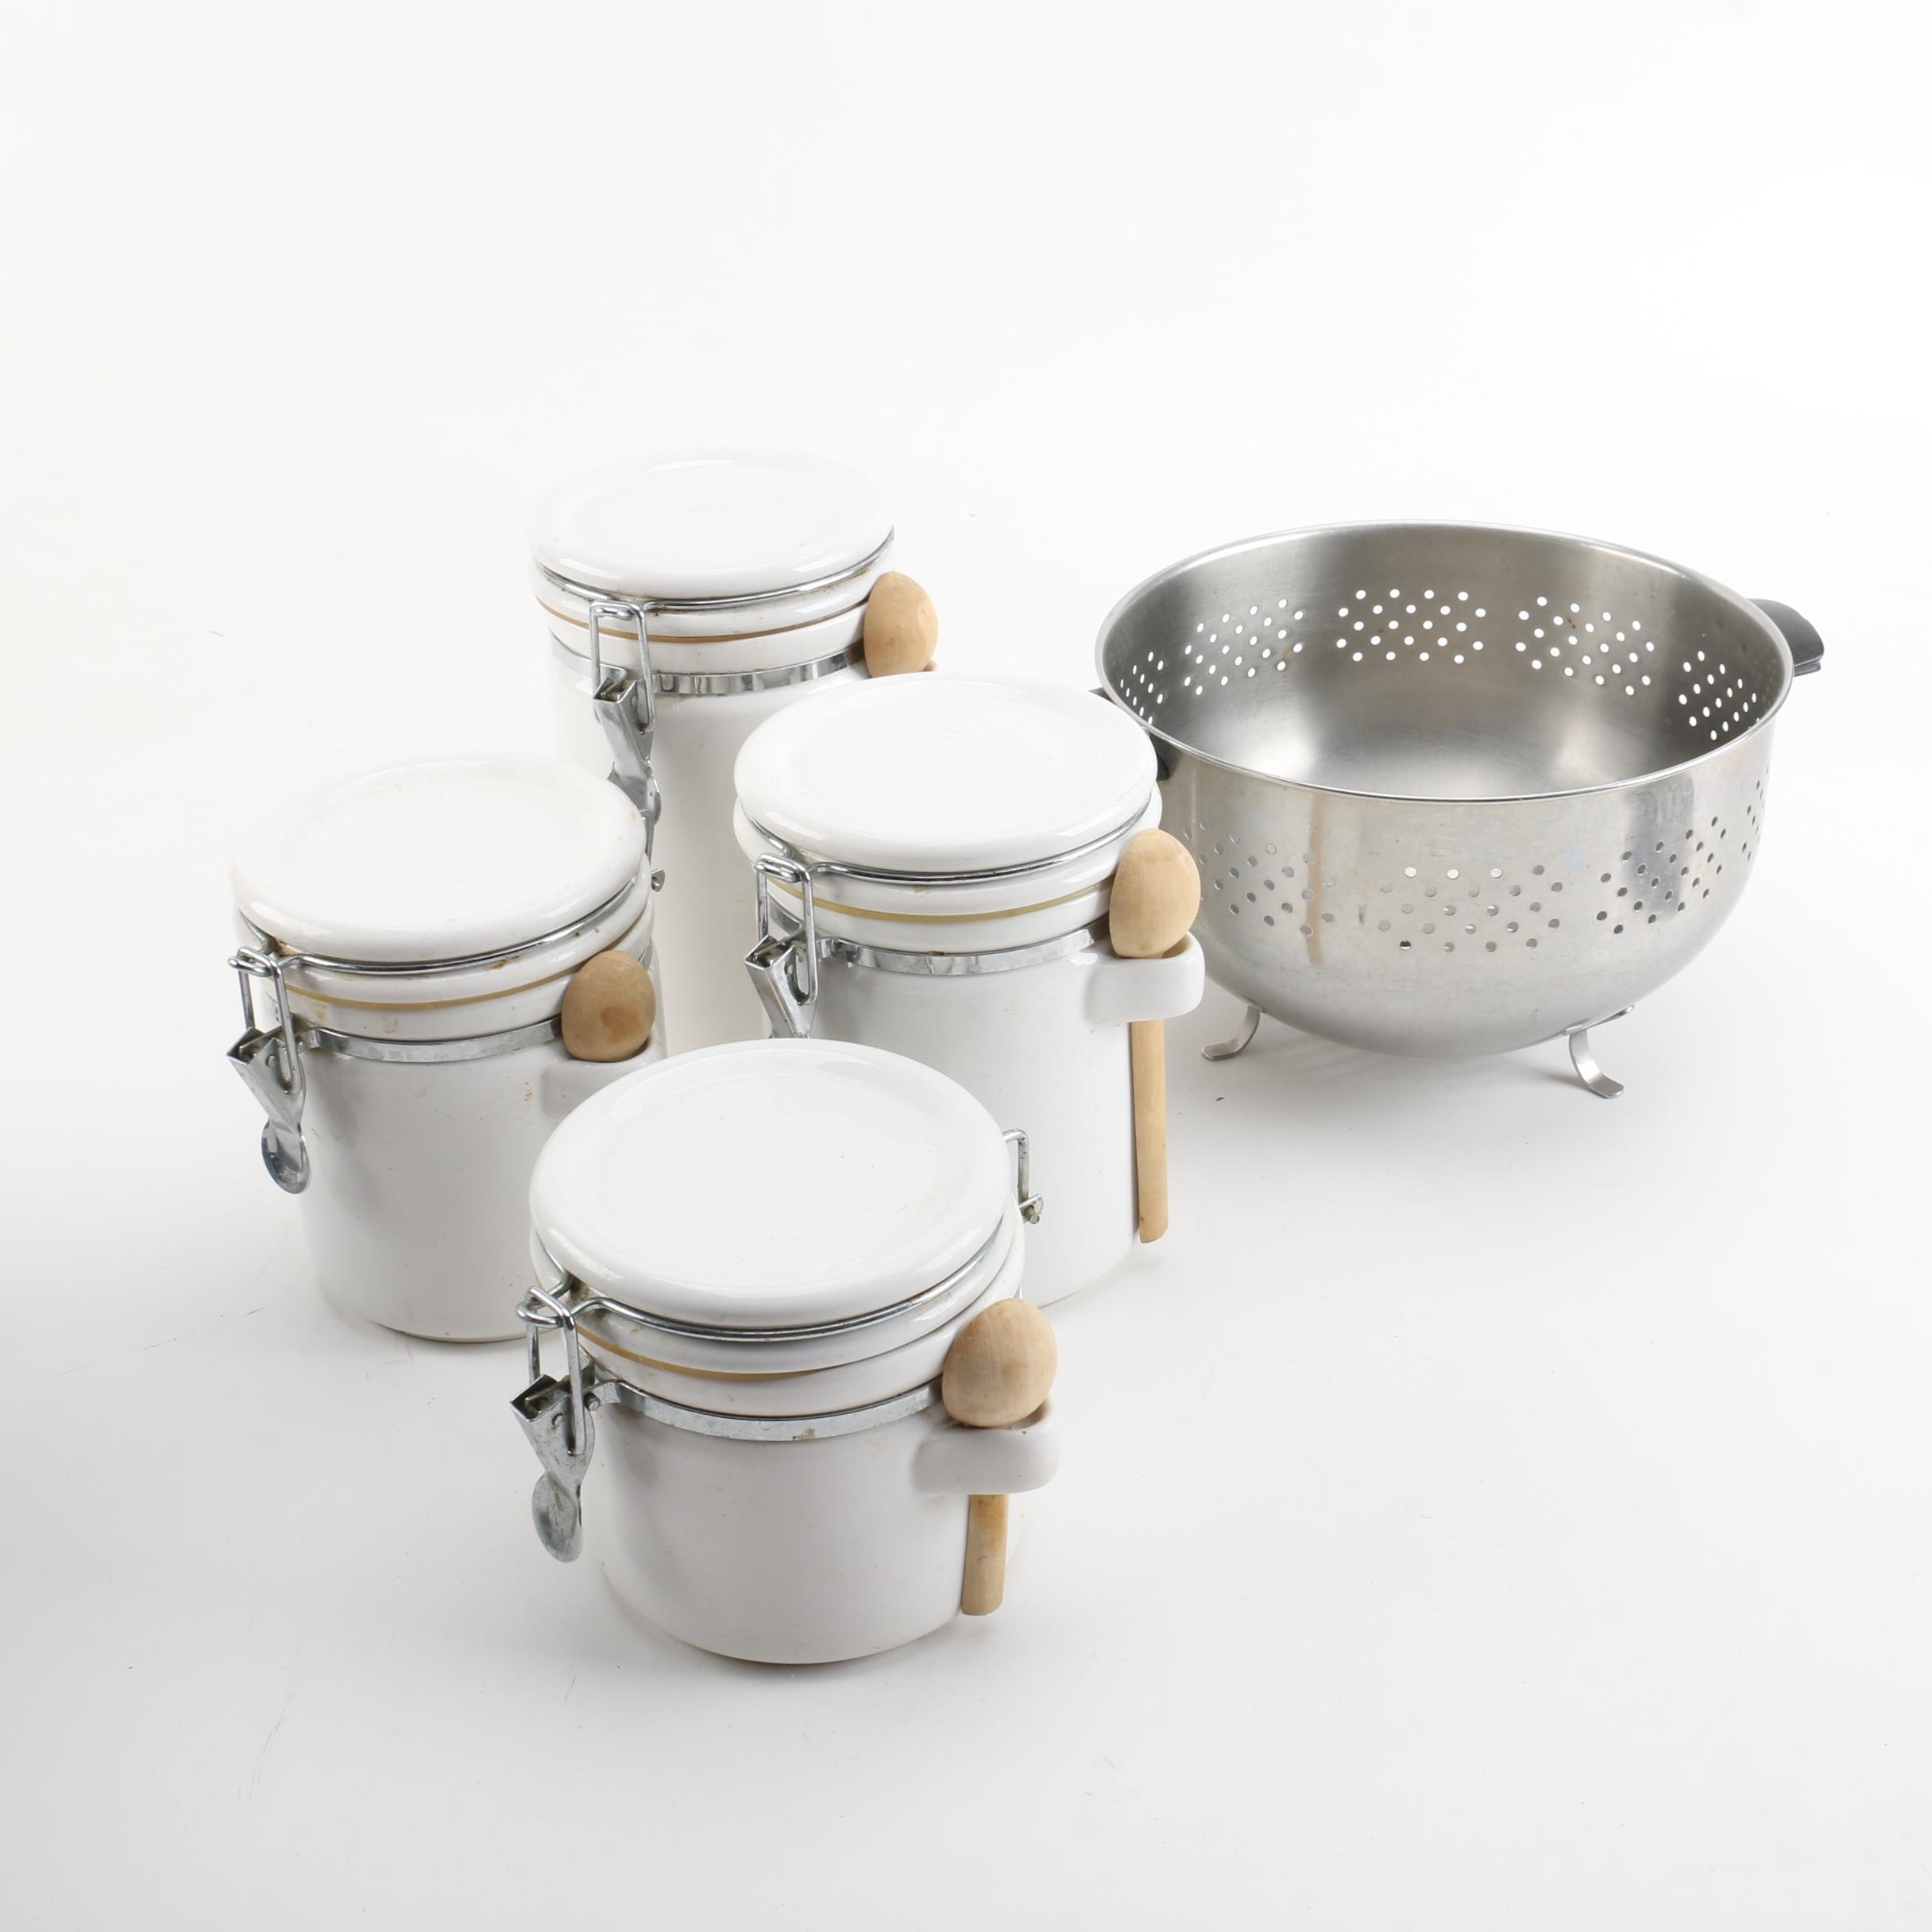 Metal Colander and Ceramic Canisters with Wooden Spoons